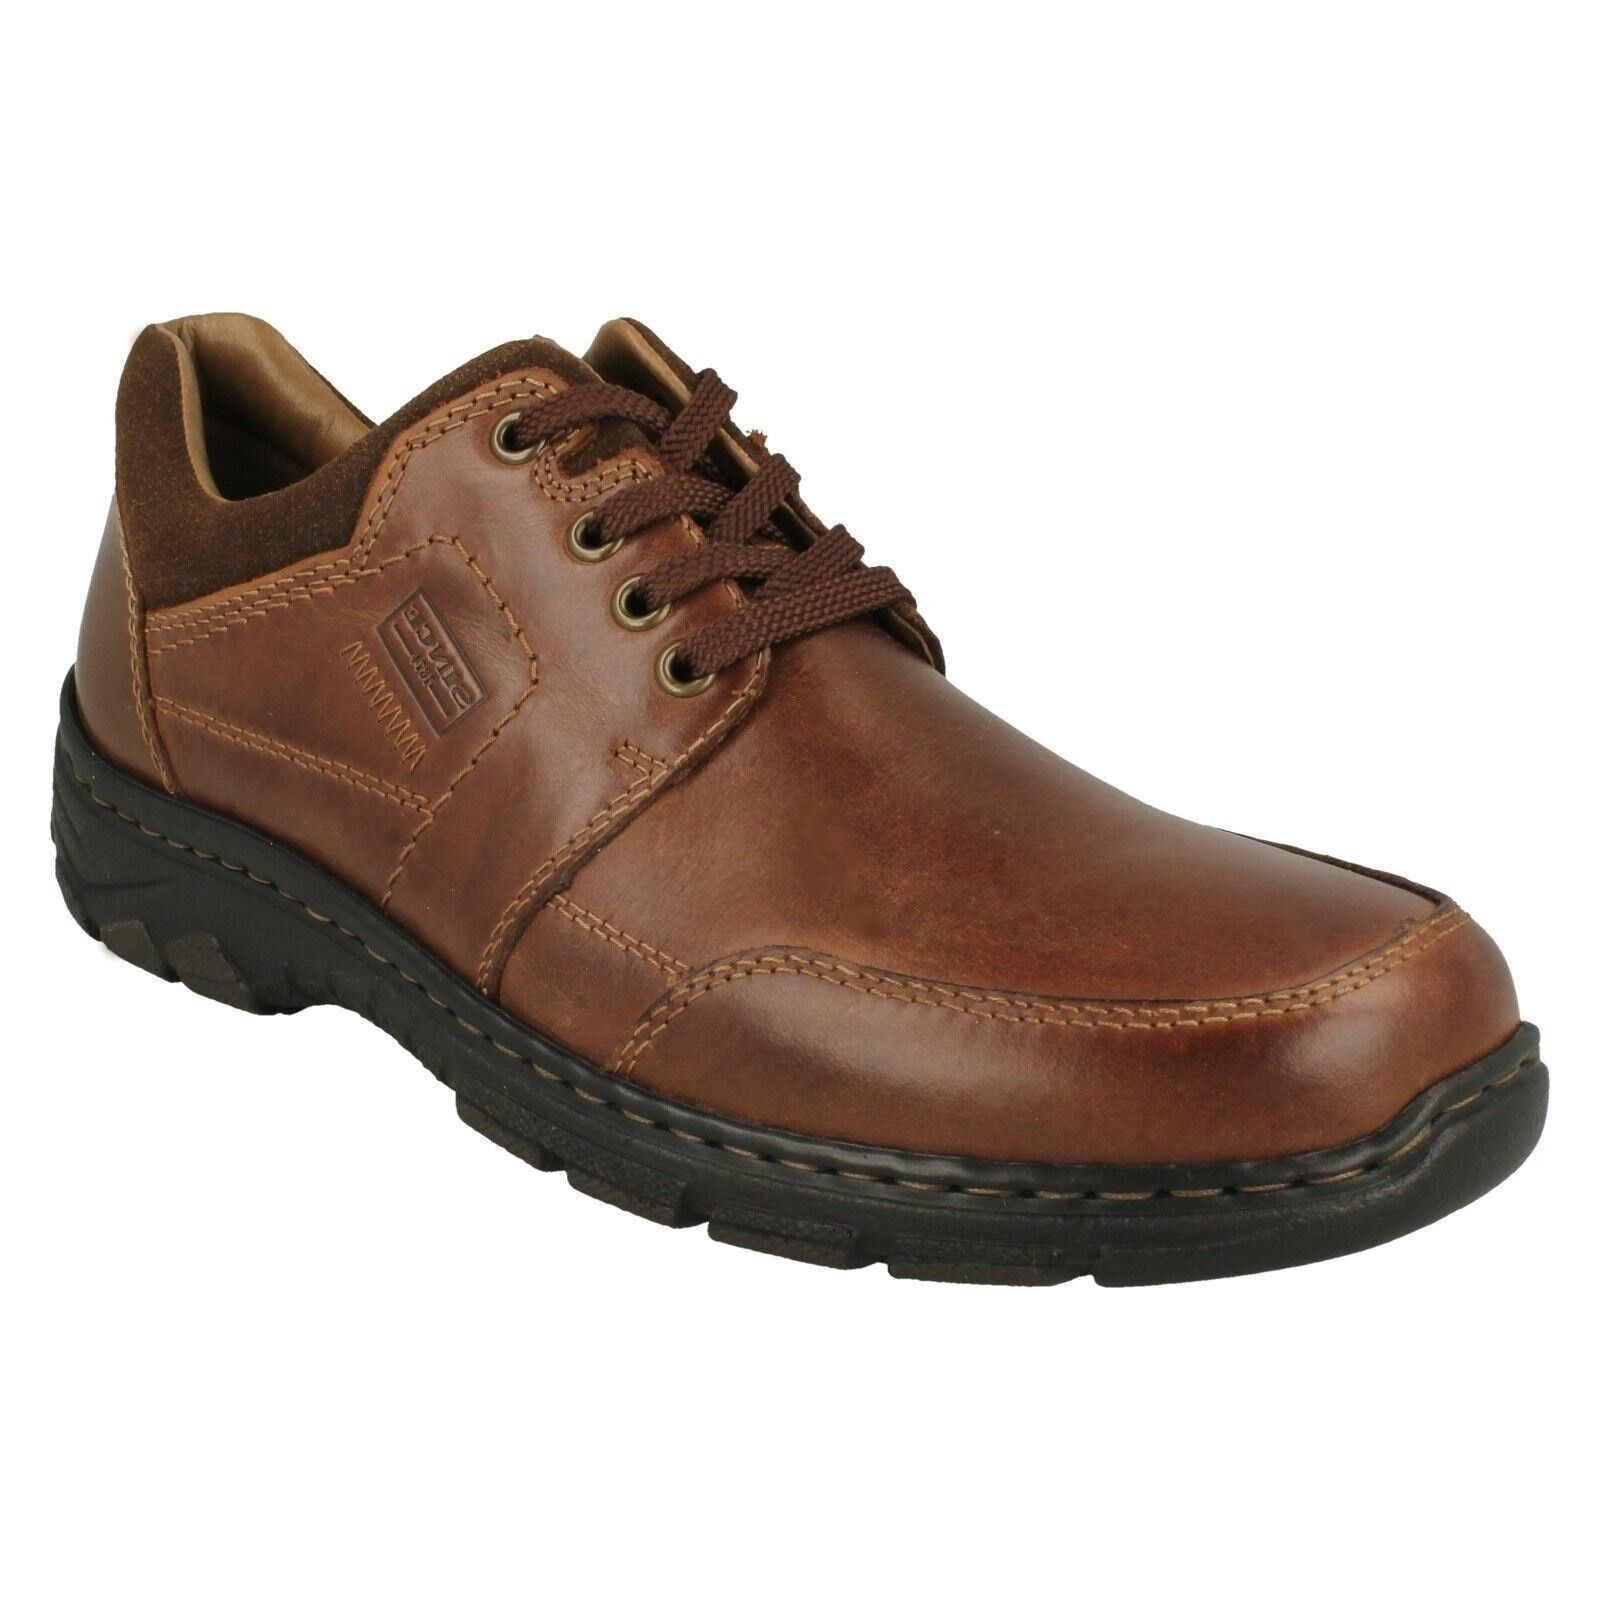 MENS RIEKER braun LEATHER LACE UP CASUAL EVERYDAY WORK OFFICE schuhe Größe 19911